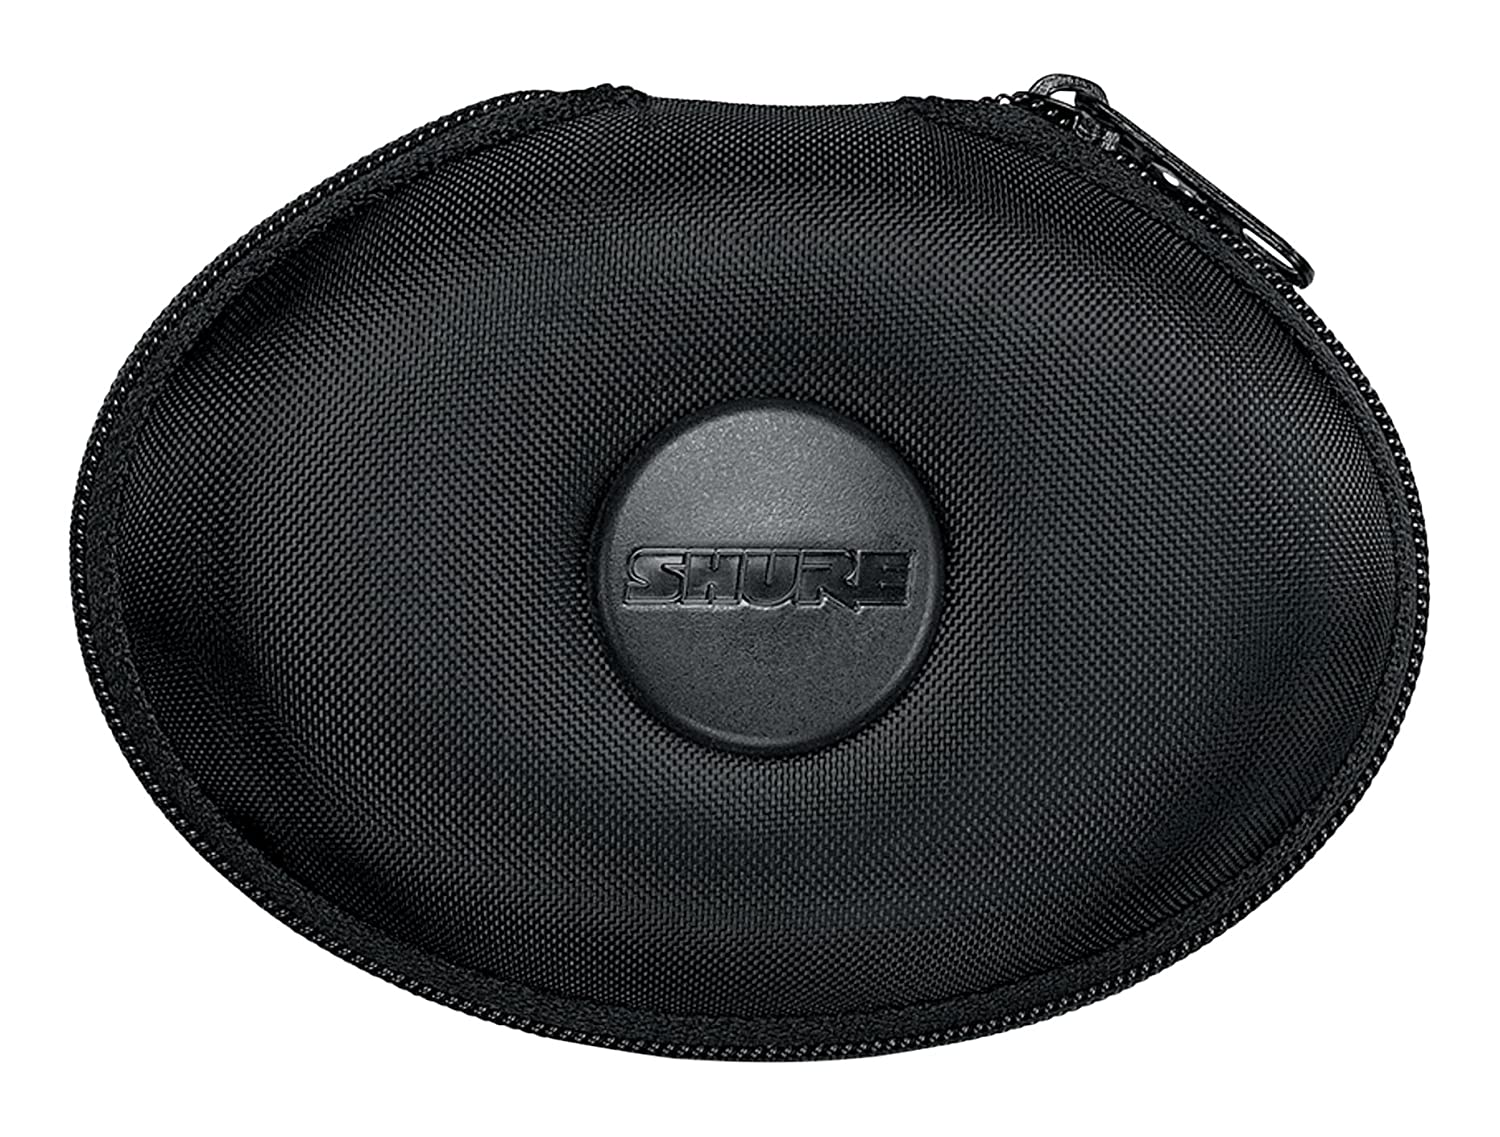 Shure EAHCASE Fine Weave Hard Pouch for Shure Earphones - Black Shure Incorporated